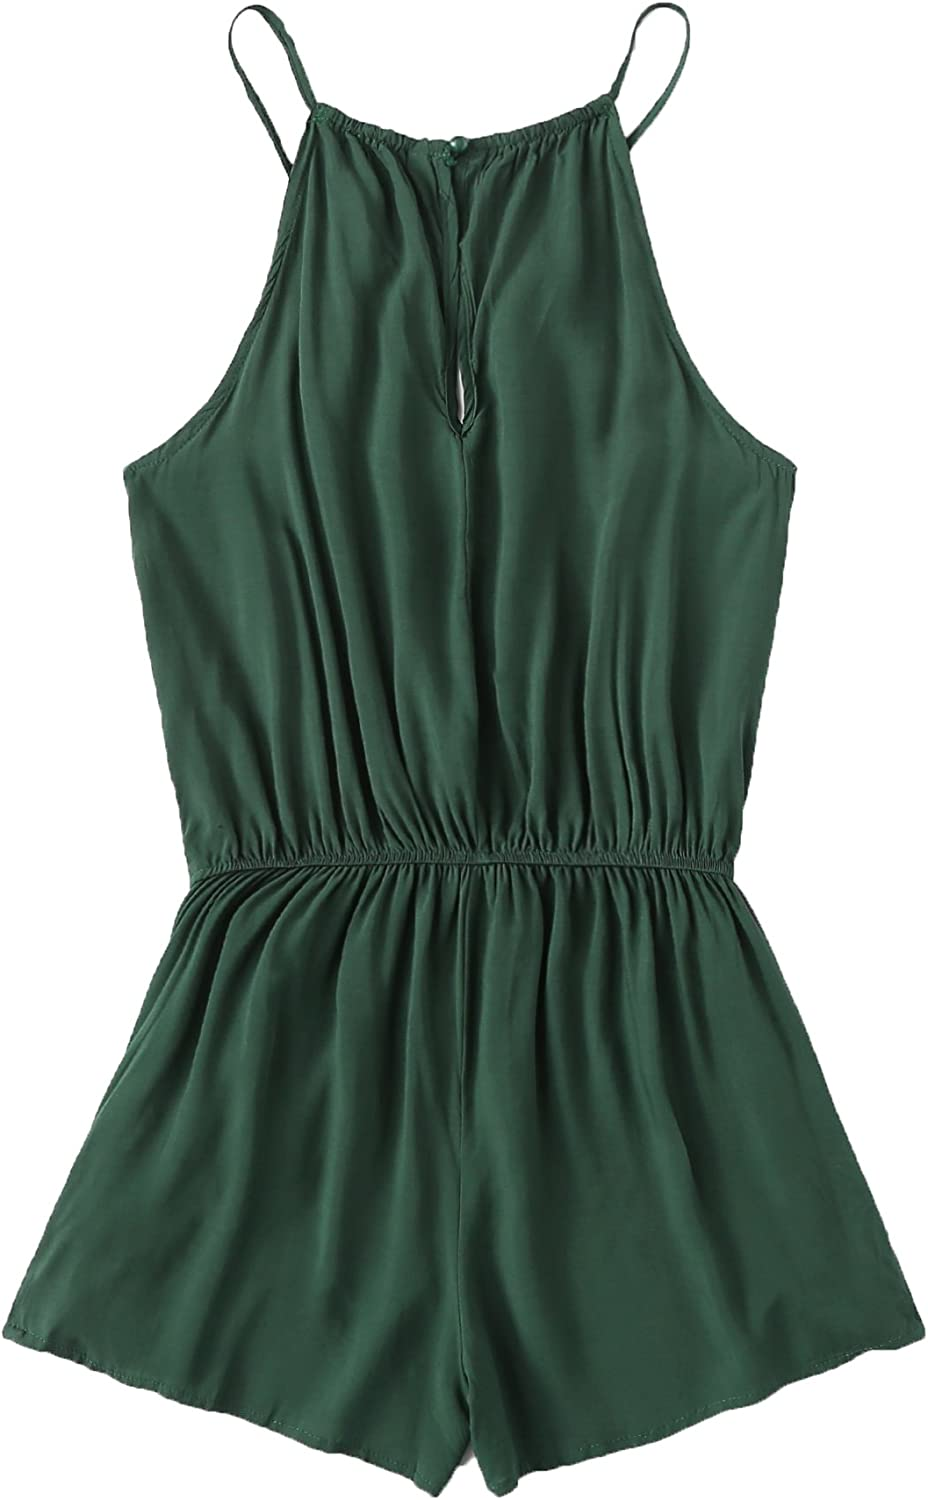 ROMWE Womens Casual Embroidered Tape Detail Cami Romper Jumpsuit with Pockets